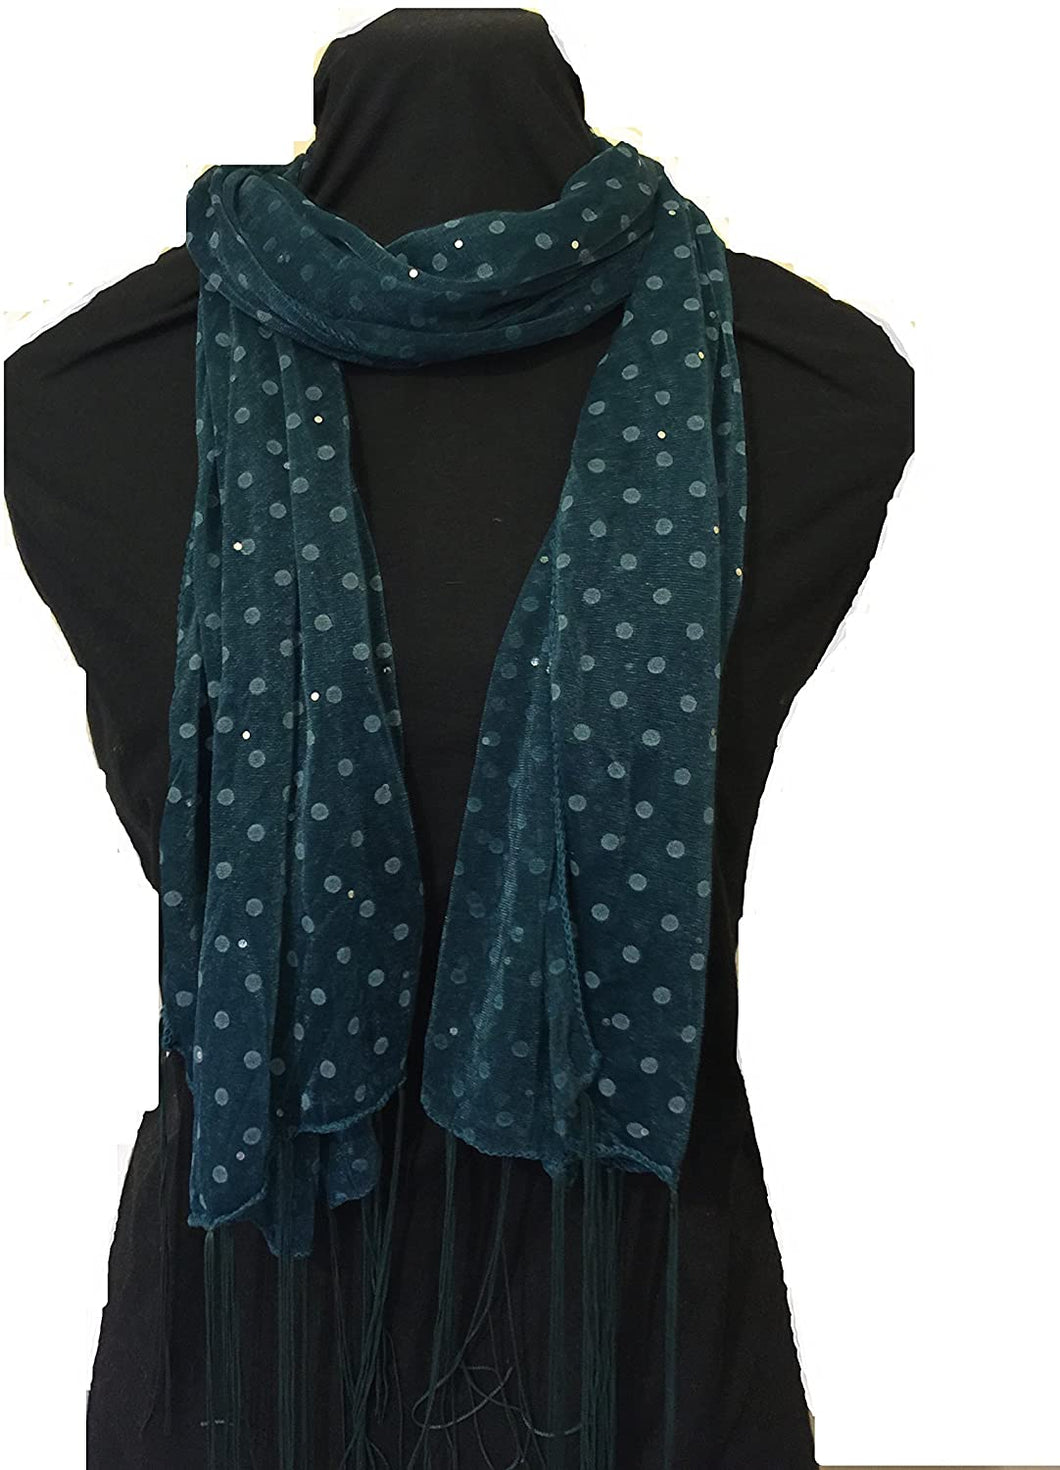 Pamper Yourself Now Green Spotty Print Long Thin Shiny Scarf with Pretty Sparkle Lovely for Evening wear